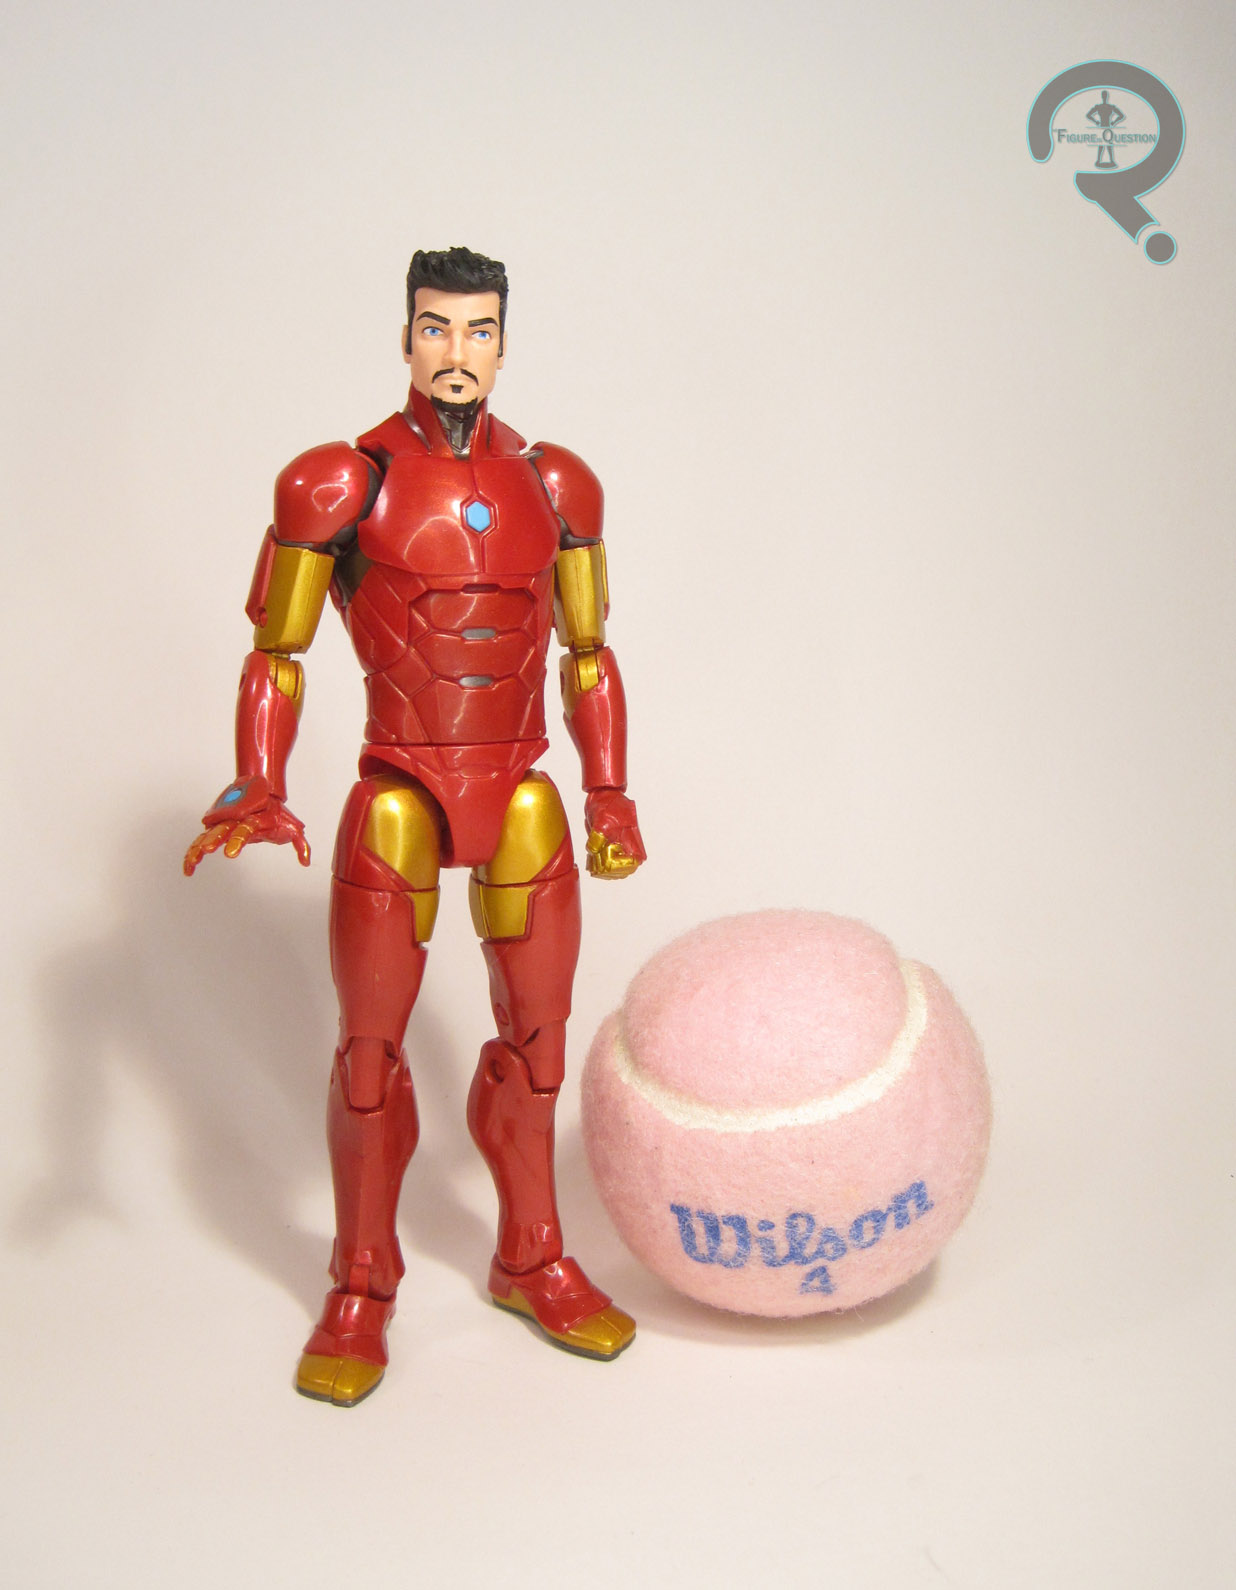 1563: Invincible Iron Man | The Figure In Question